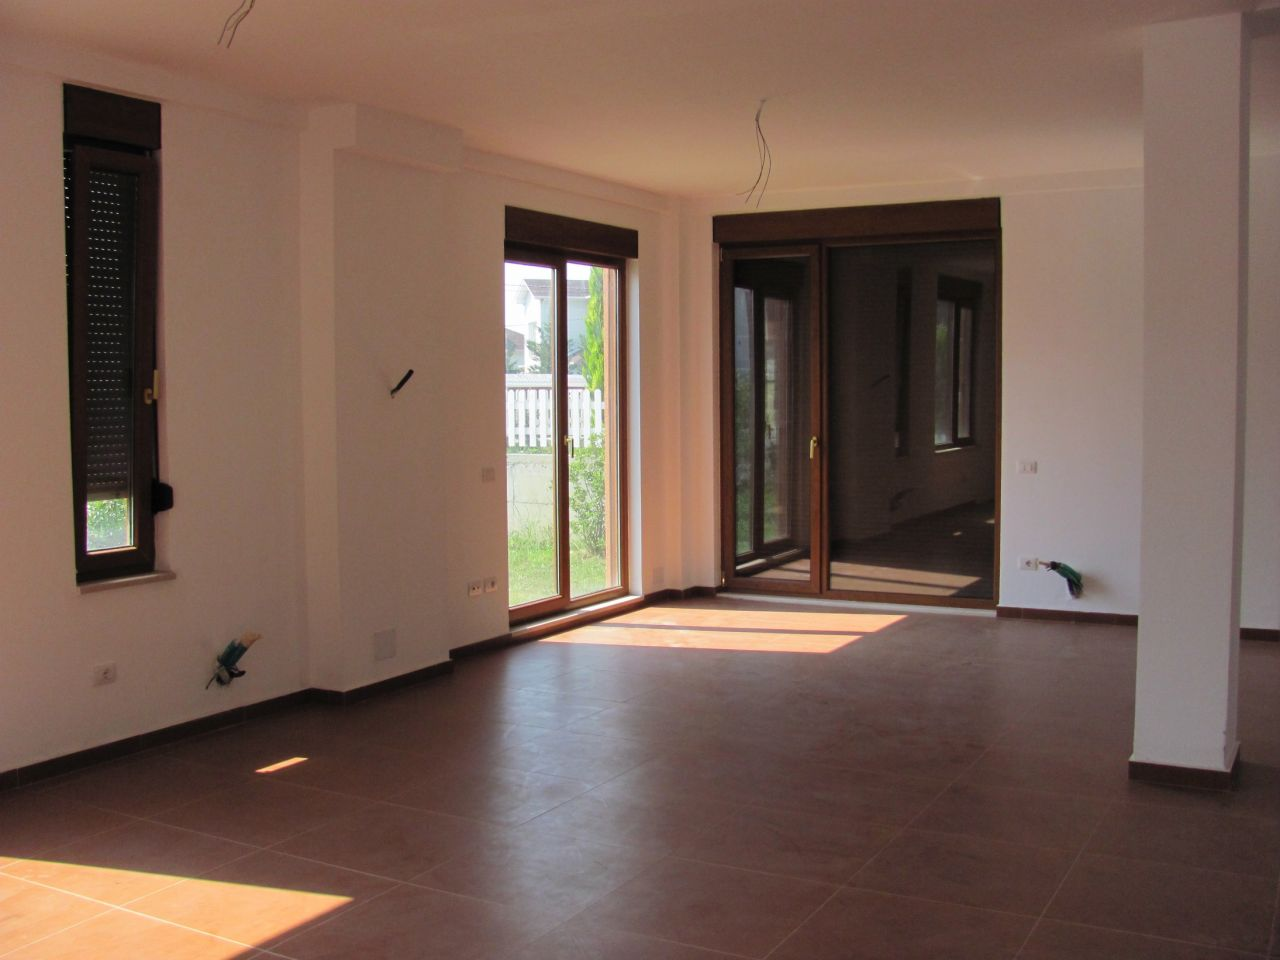 rent villa in tirane in a very nice residential complex in the outskirts of the city